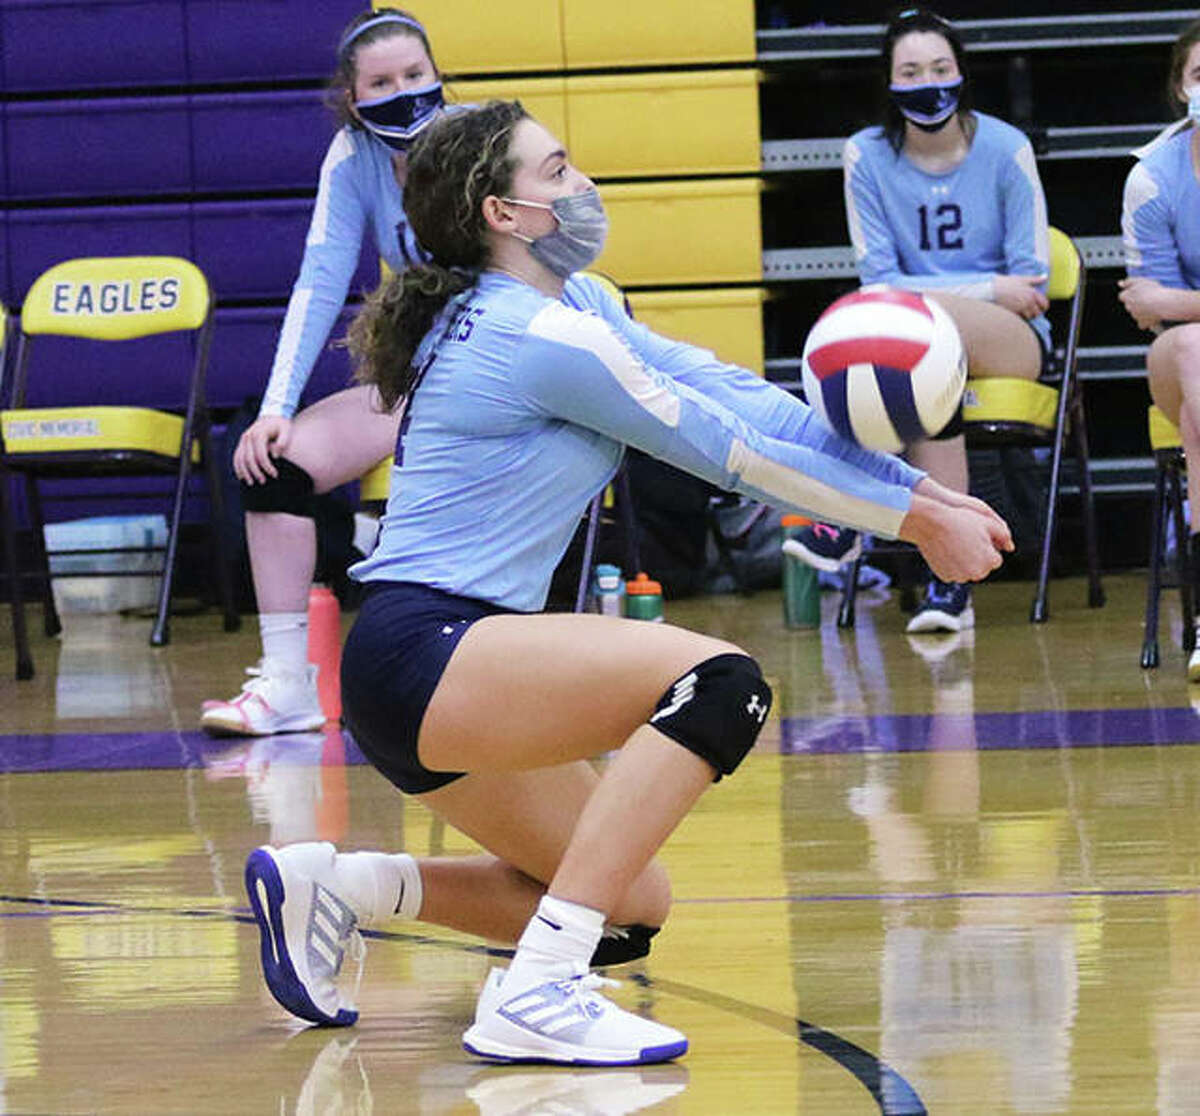 Jersey's Chloe White, shown receiving a serve in a March 18 match vs. CM in Bethalto, had five kills in the Panthers' victory over Calhoun on Wednesday night in Jerseyville.